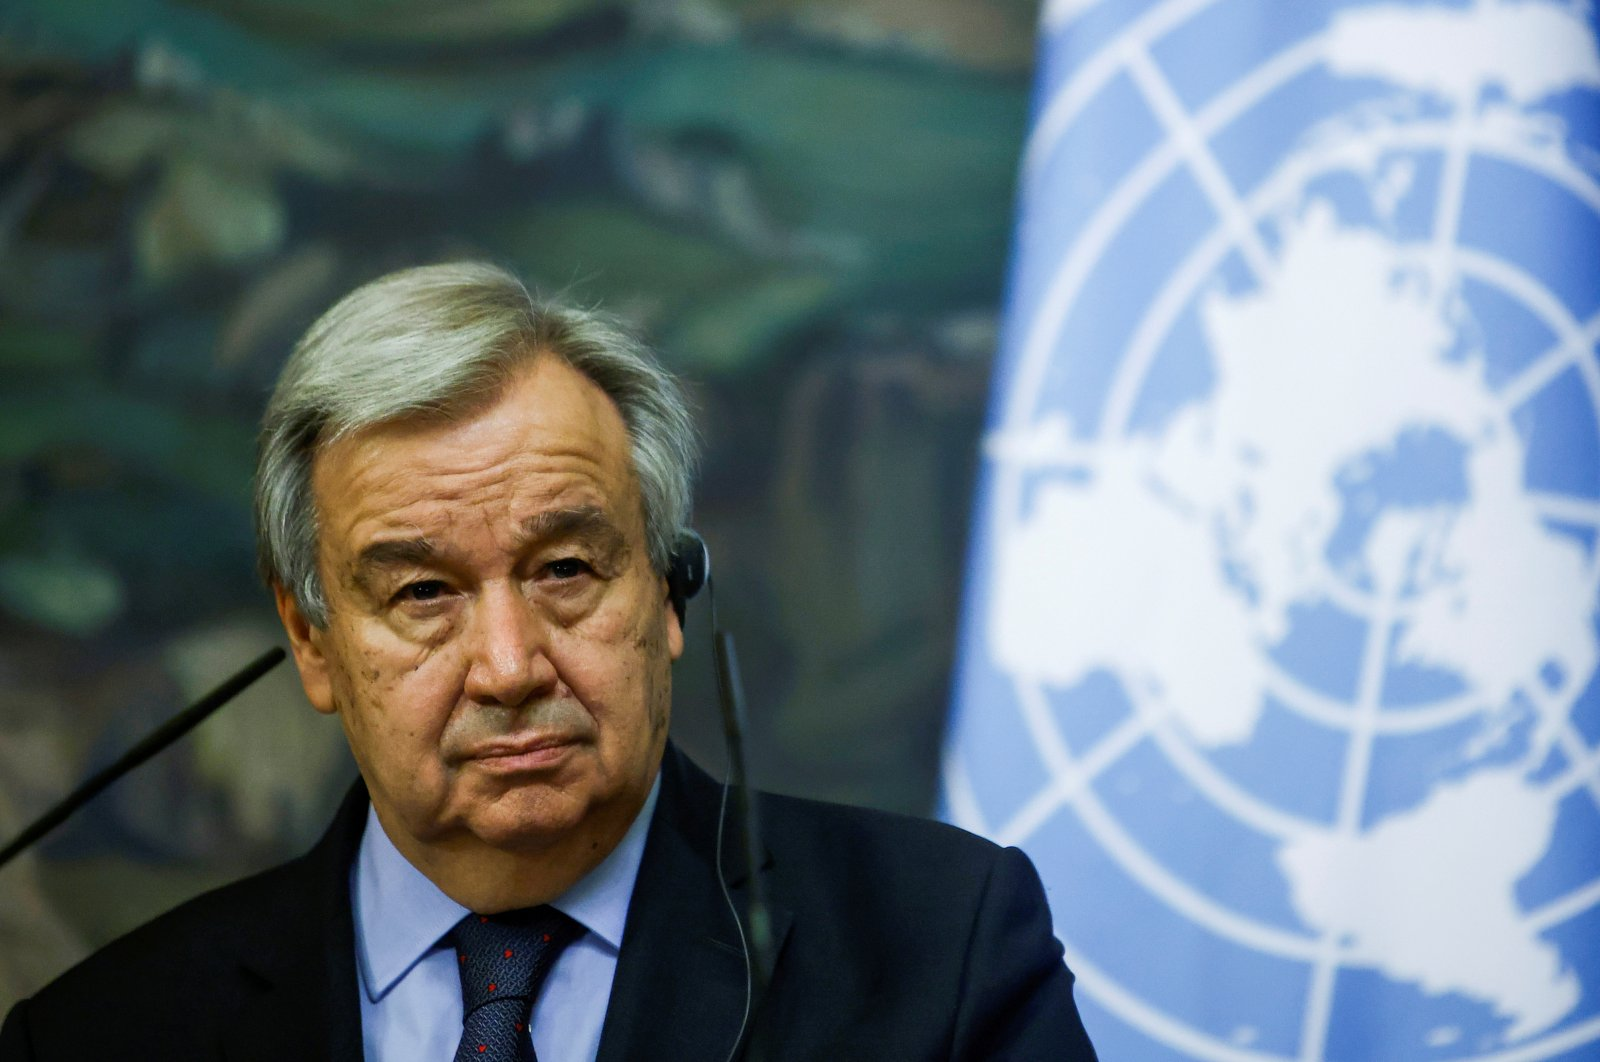 U.N. Secretary-General Antonio Guterres attends a news conference following talks with Russian Foreign Minister Sergei Lavrov in Moscow, Russia, May 12, 2021. (Reuters Photo)